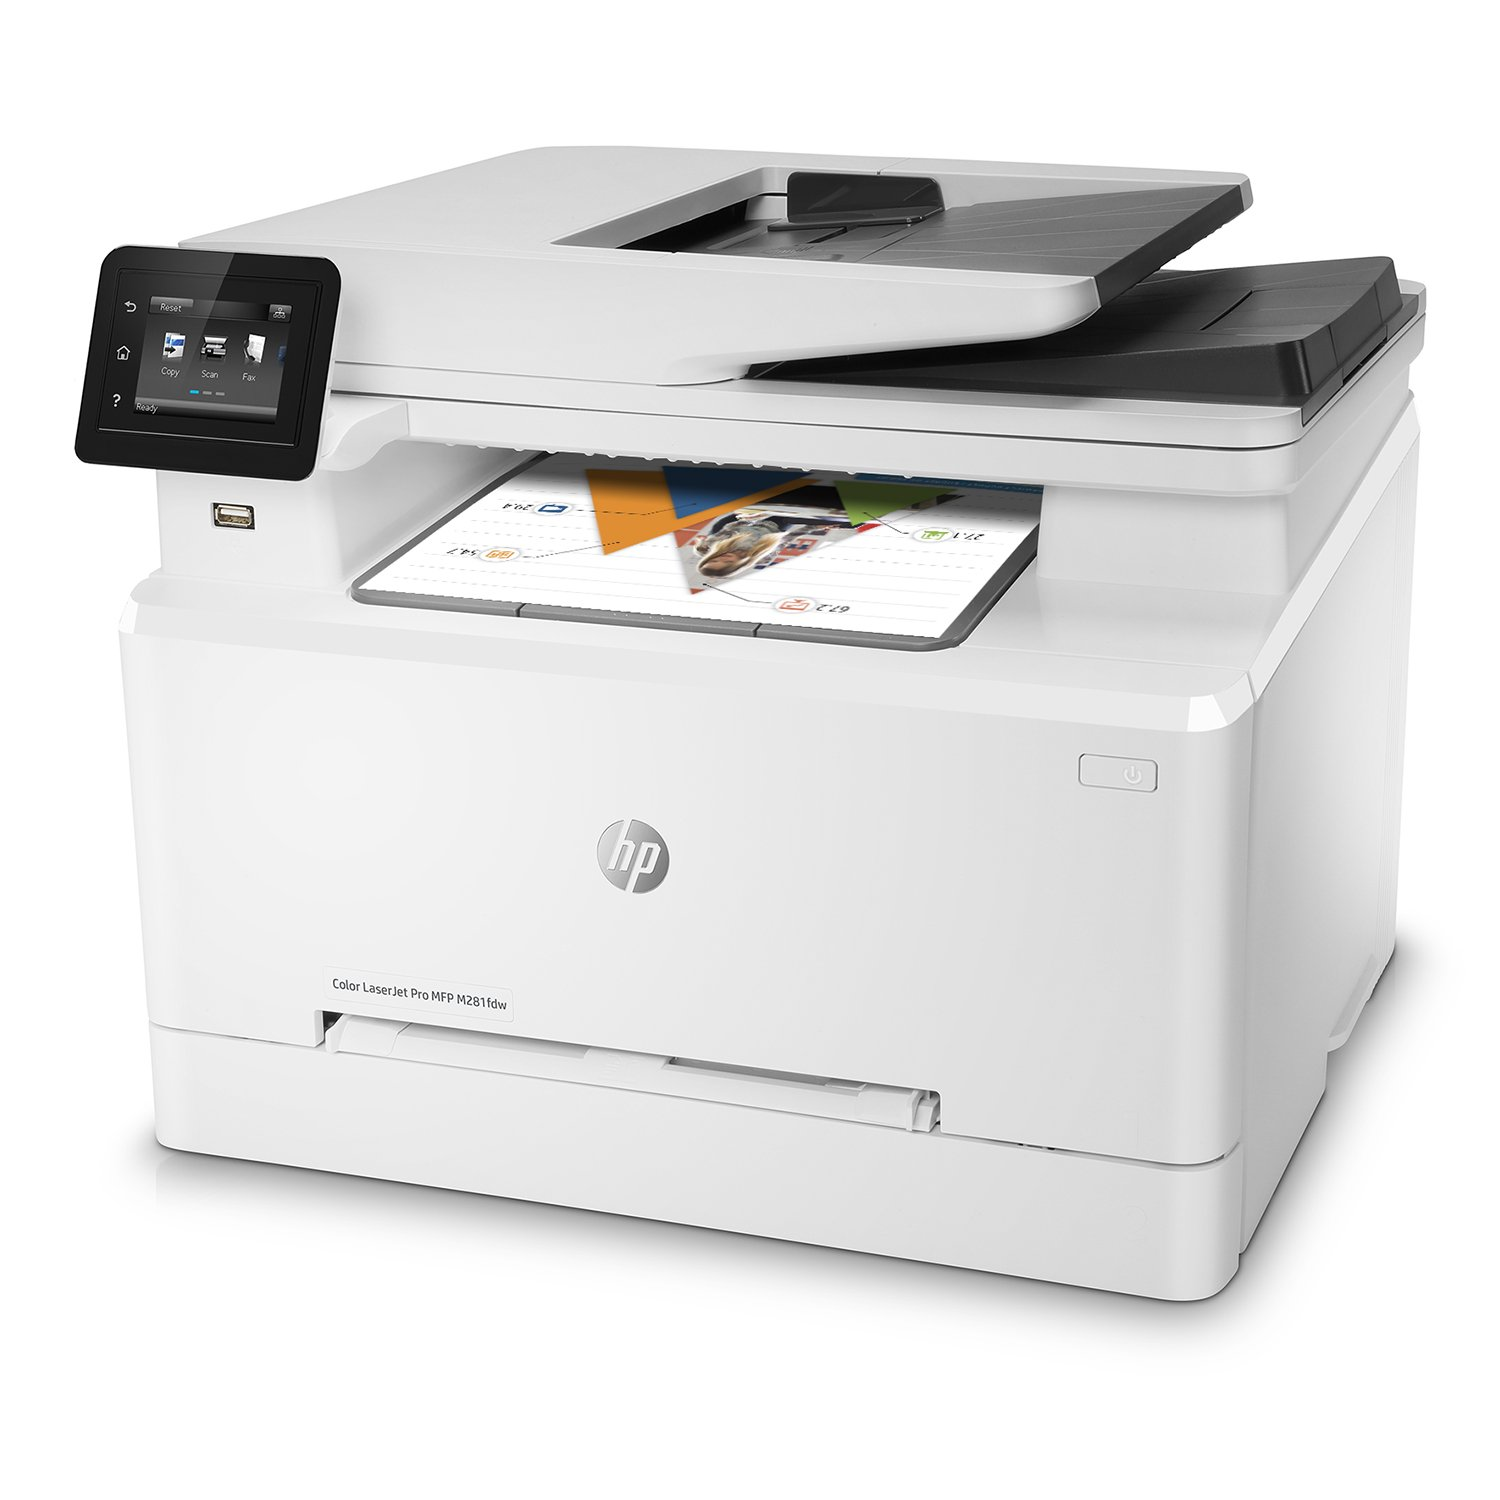 HP LaserJet Pro M281fdw All in One Wireless Color Laser Printer, Amazon Dash Replenishment ready (T6B82A) by HP